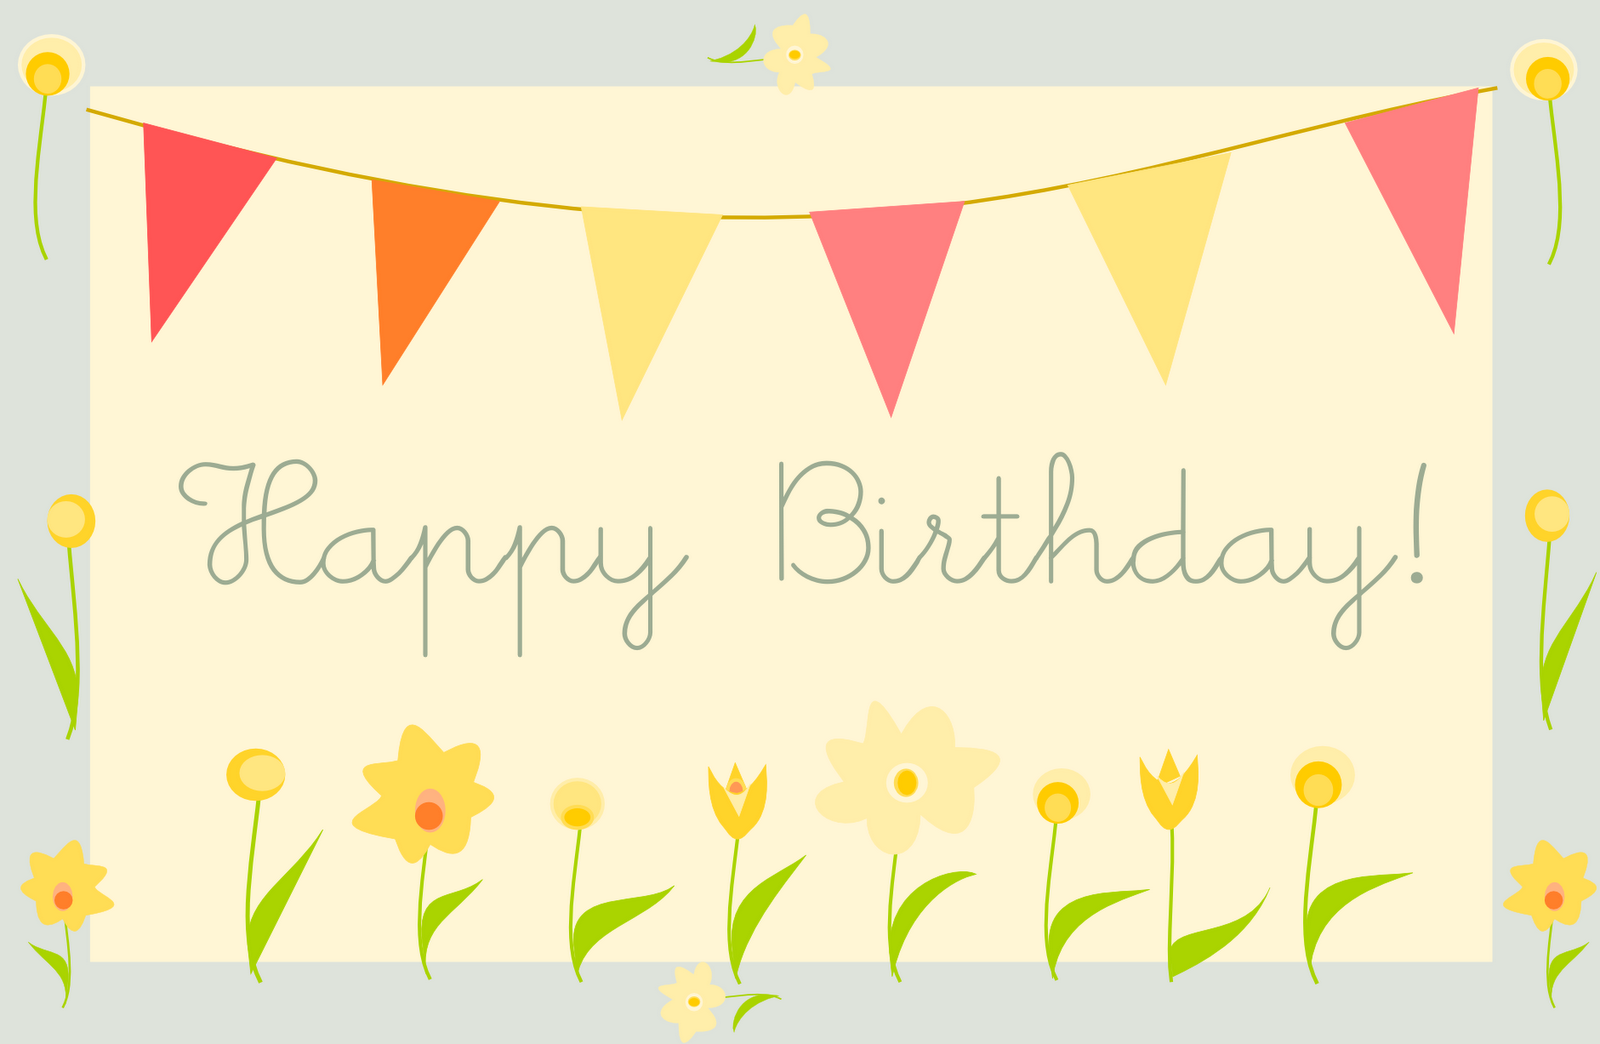 Simple Birthday Cards Printable ~ Free printable happy birthday greeting card quot gartenparty ausdruckbare geburtstagskarte